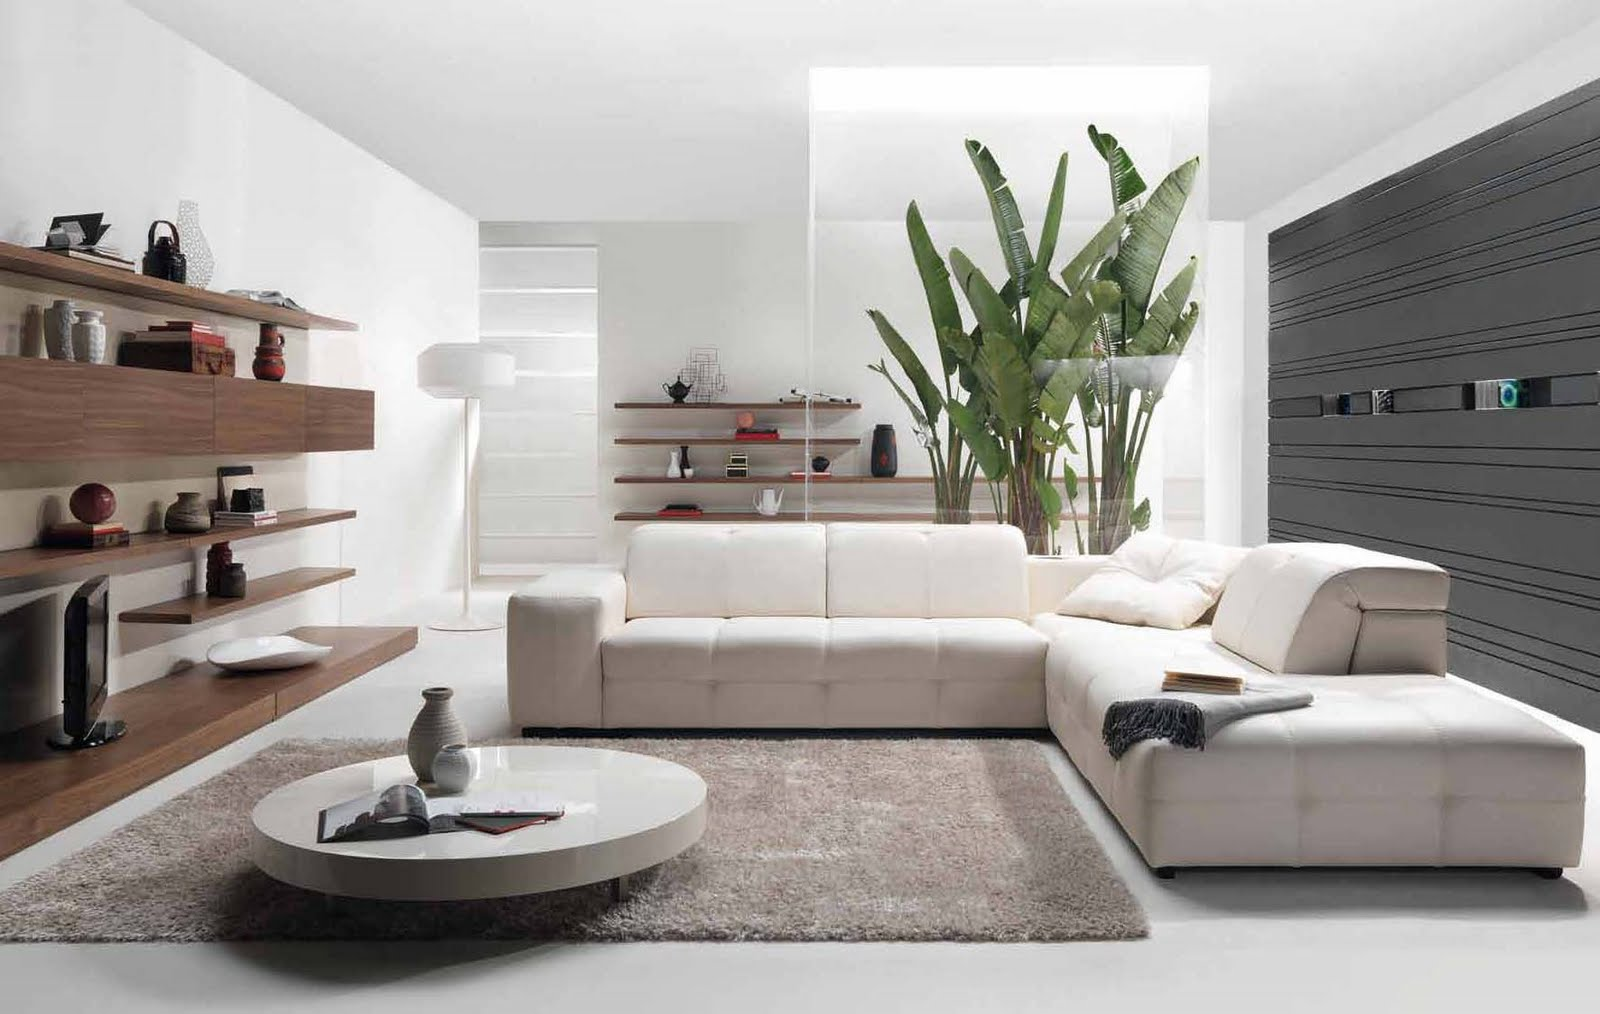 future house design modern living room interior design - Interior Design Living Room